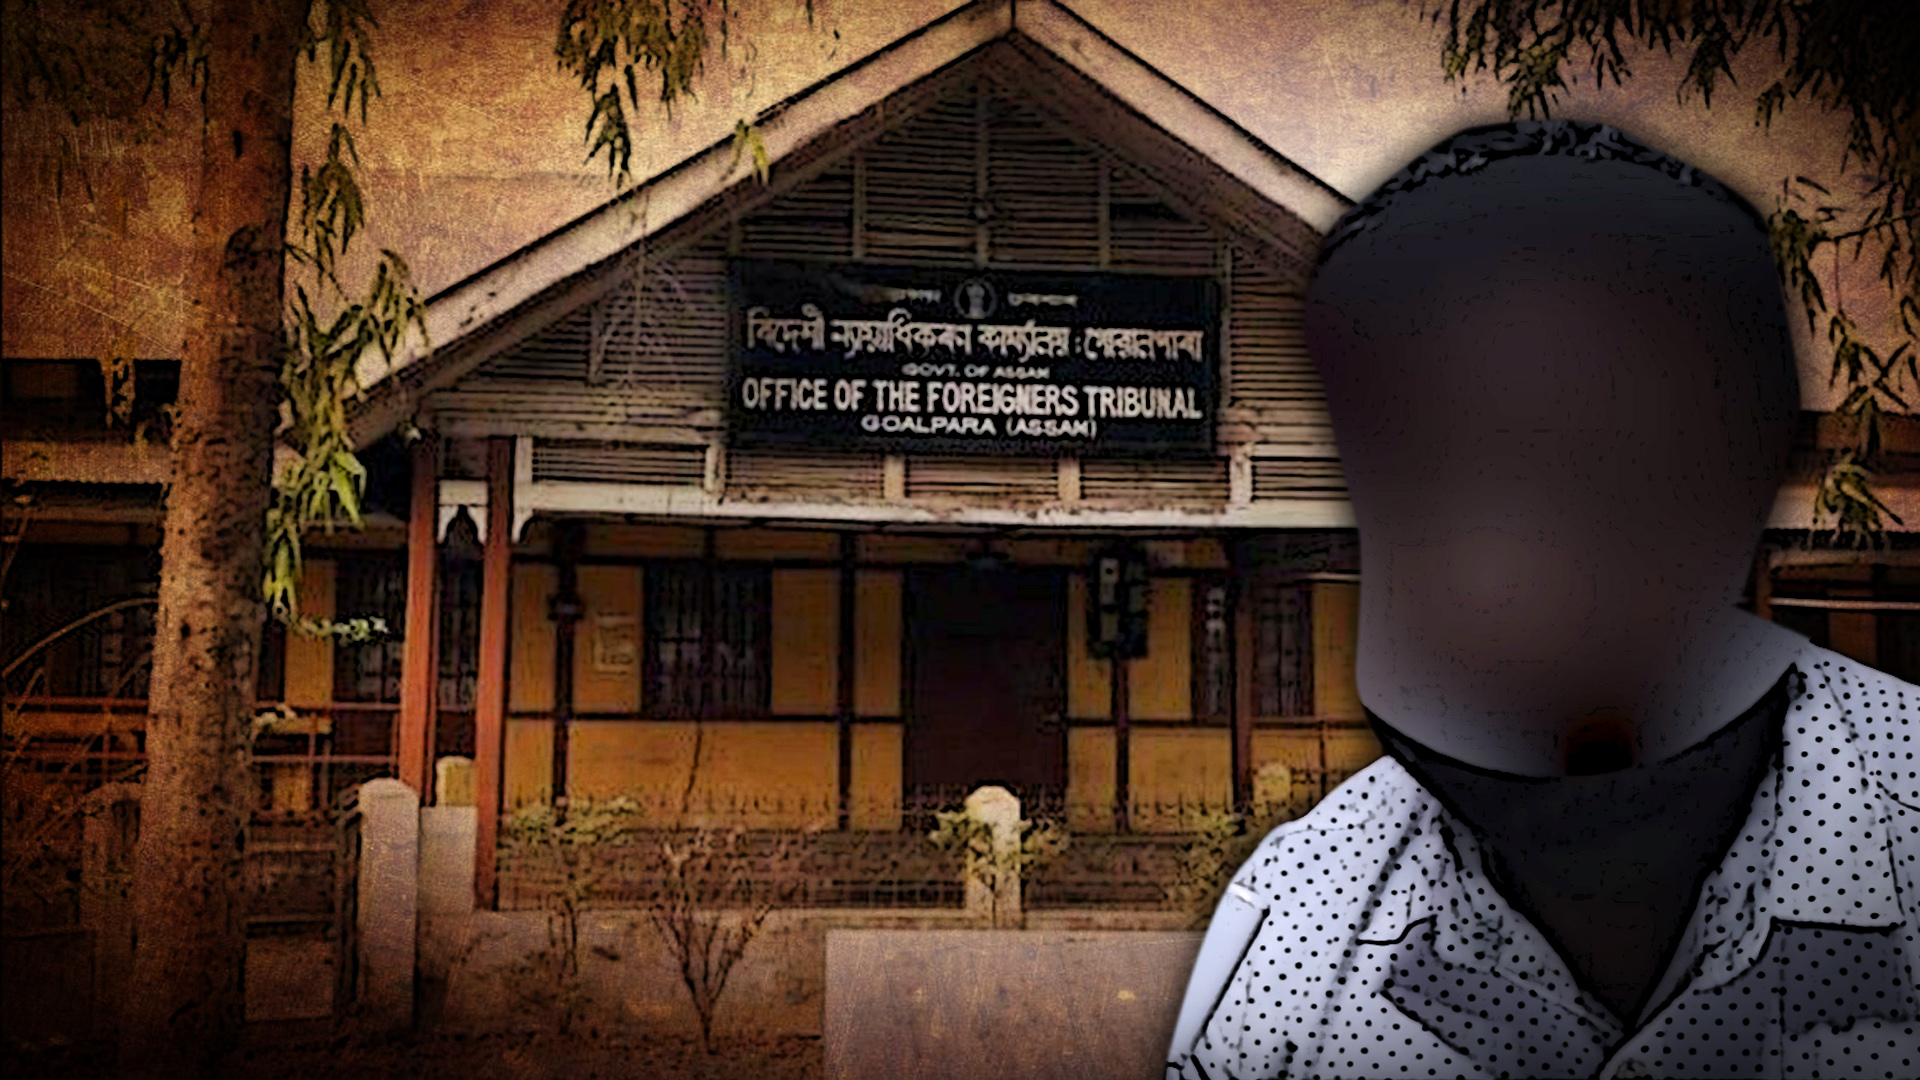 Assam how citizens are being turned into foreigners assam nrc altavistaventures Choice Image